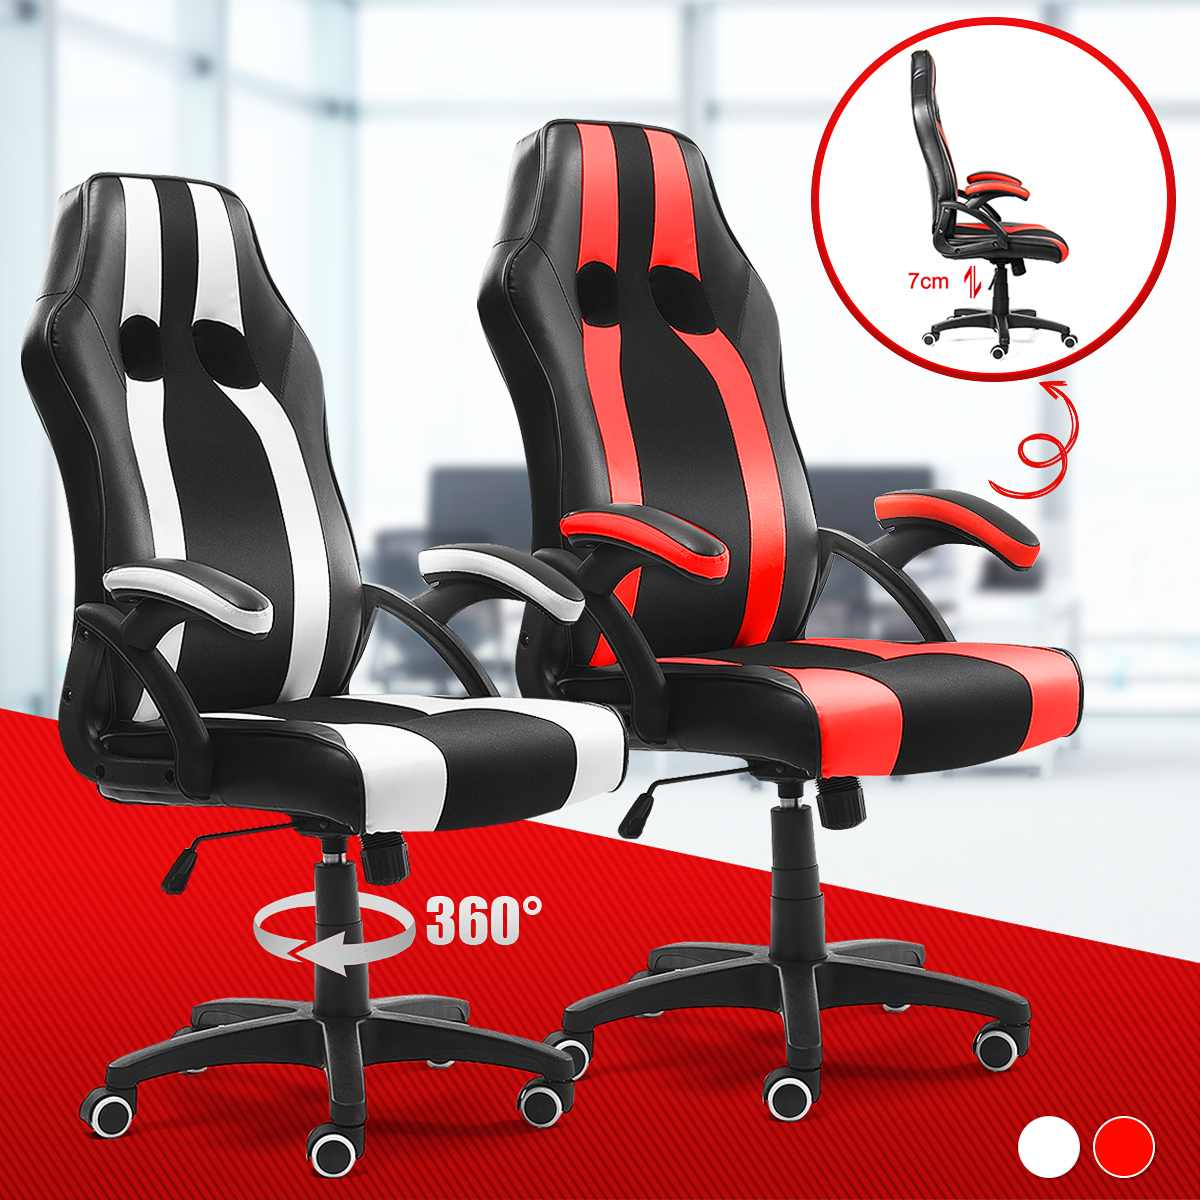 H957314422170403fb27f252285c3fdaeQ - WCG Gaming Chair Computer Armchair Office Chairs Home Swivel Massage Chair Lifting Adjustable Desk Chair Lying Recliner Chair